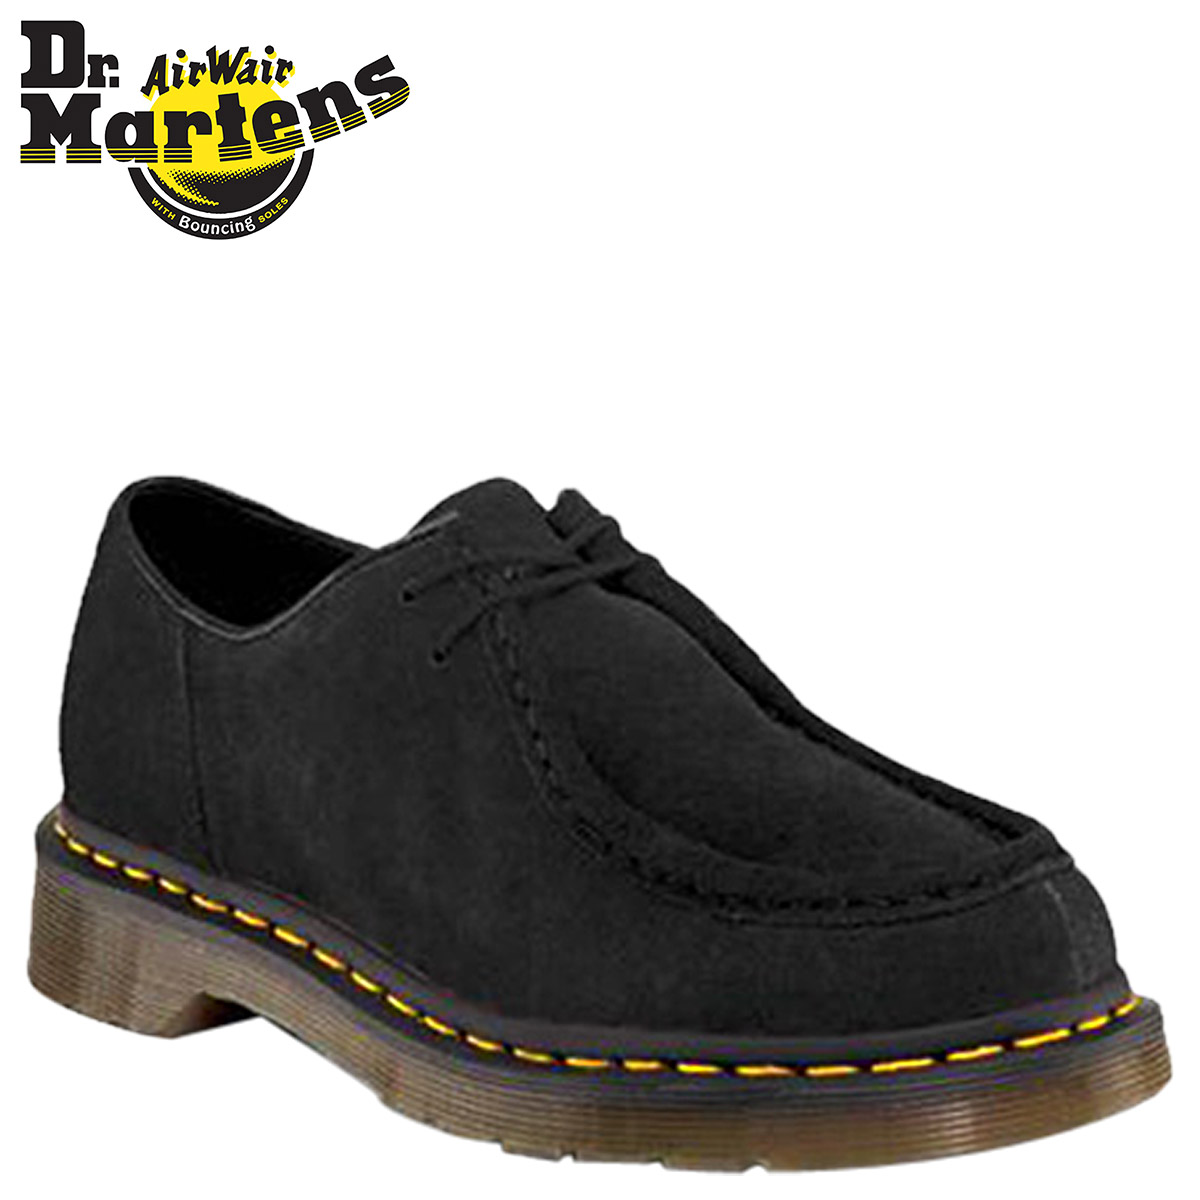 Regular  points 2 x Dr. Martens Dr.Martens 2 Hall downy rose shoes   REDFORD COLLECTION R14034001